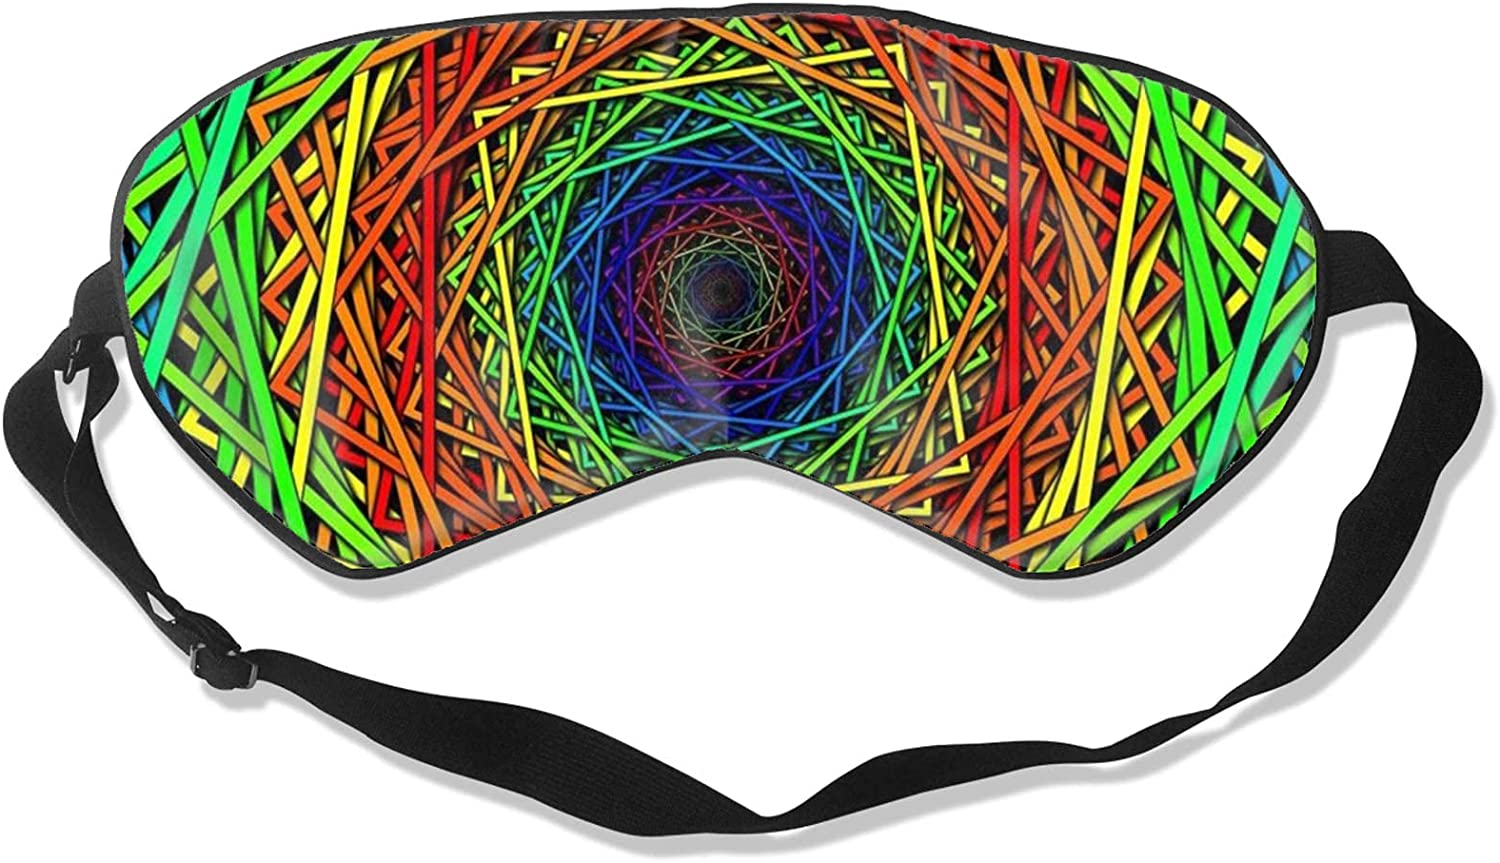 Funny Colorful Soft Sleeping Eye Cover 55% OFF Block-Light security Slee Mask